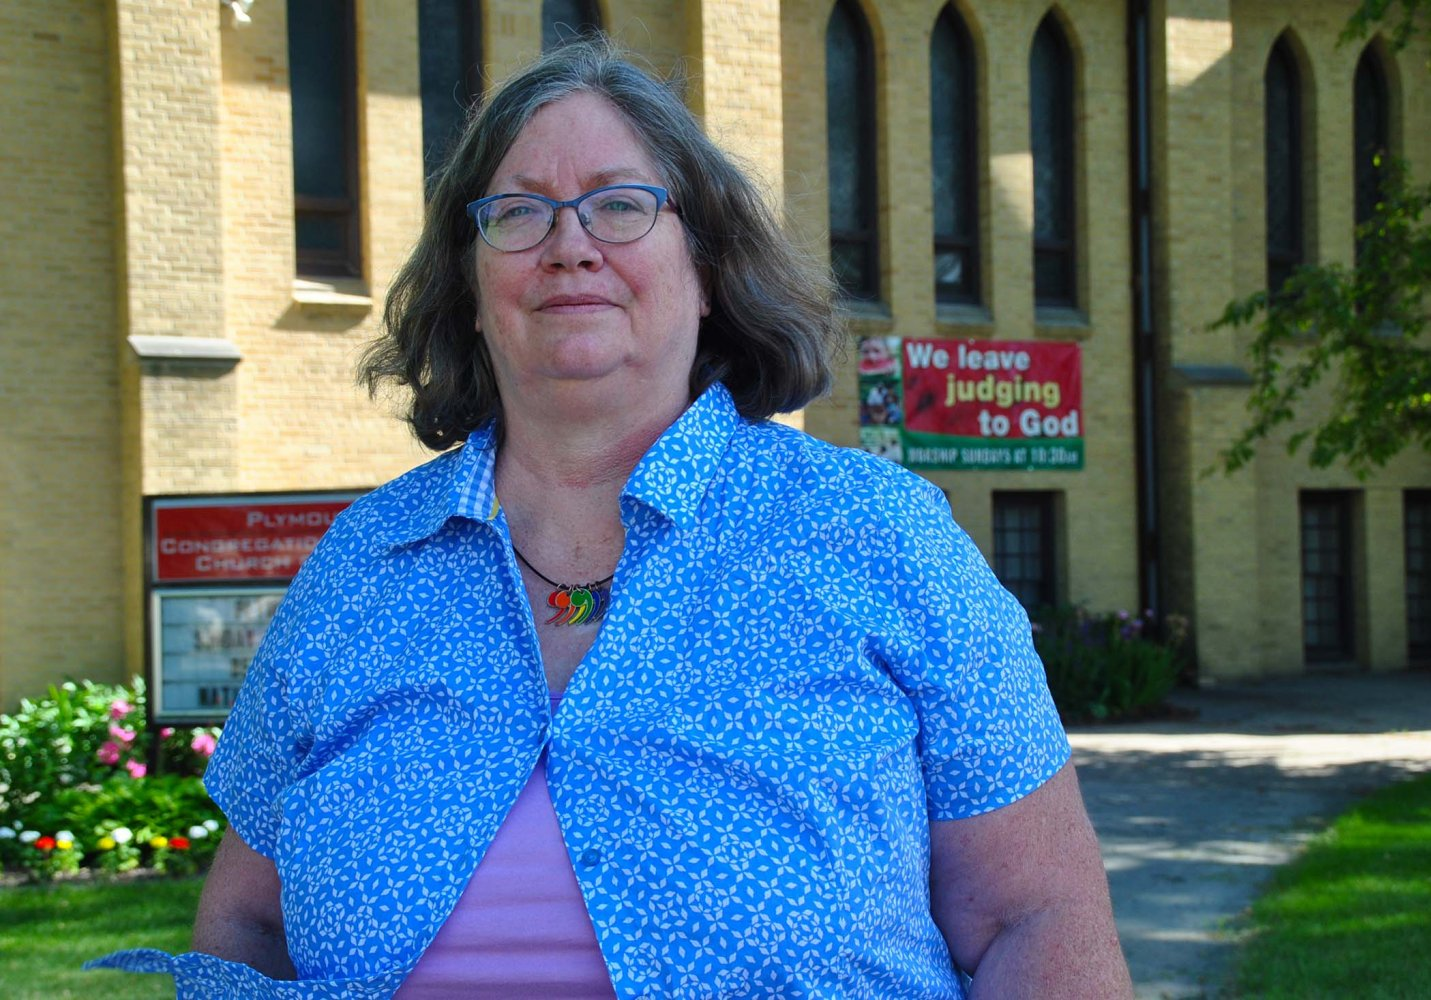 Fall from grace high plains reader fargo nd pastor grace murray formerly of plymouth congregational united church of christ after she was publicscrutiny Gallery